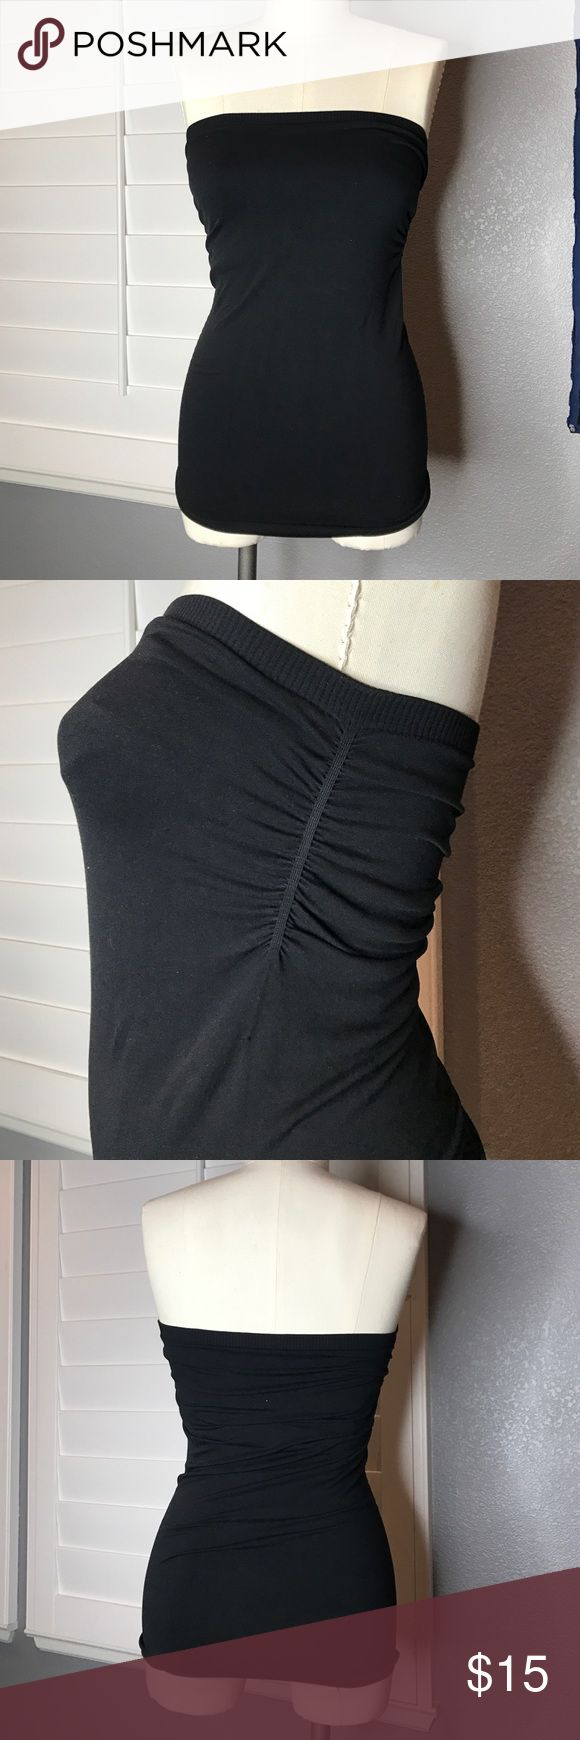 Tube Top • bebe • NWOT • Small From bebe, this black tube top is brand new, washed but never worn. Size Small, it features rouched sides and a built in shelf bra. This top is long, you can see it covered my mannequins butt so it will keep yours covered too! bebe Tops